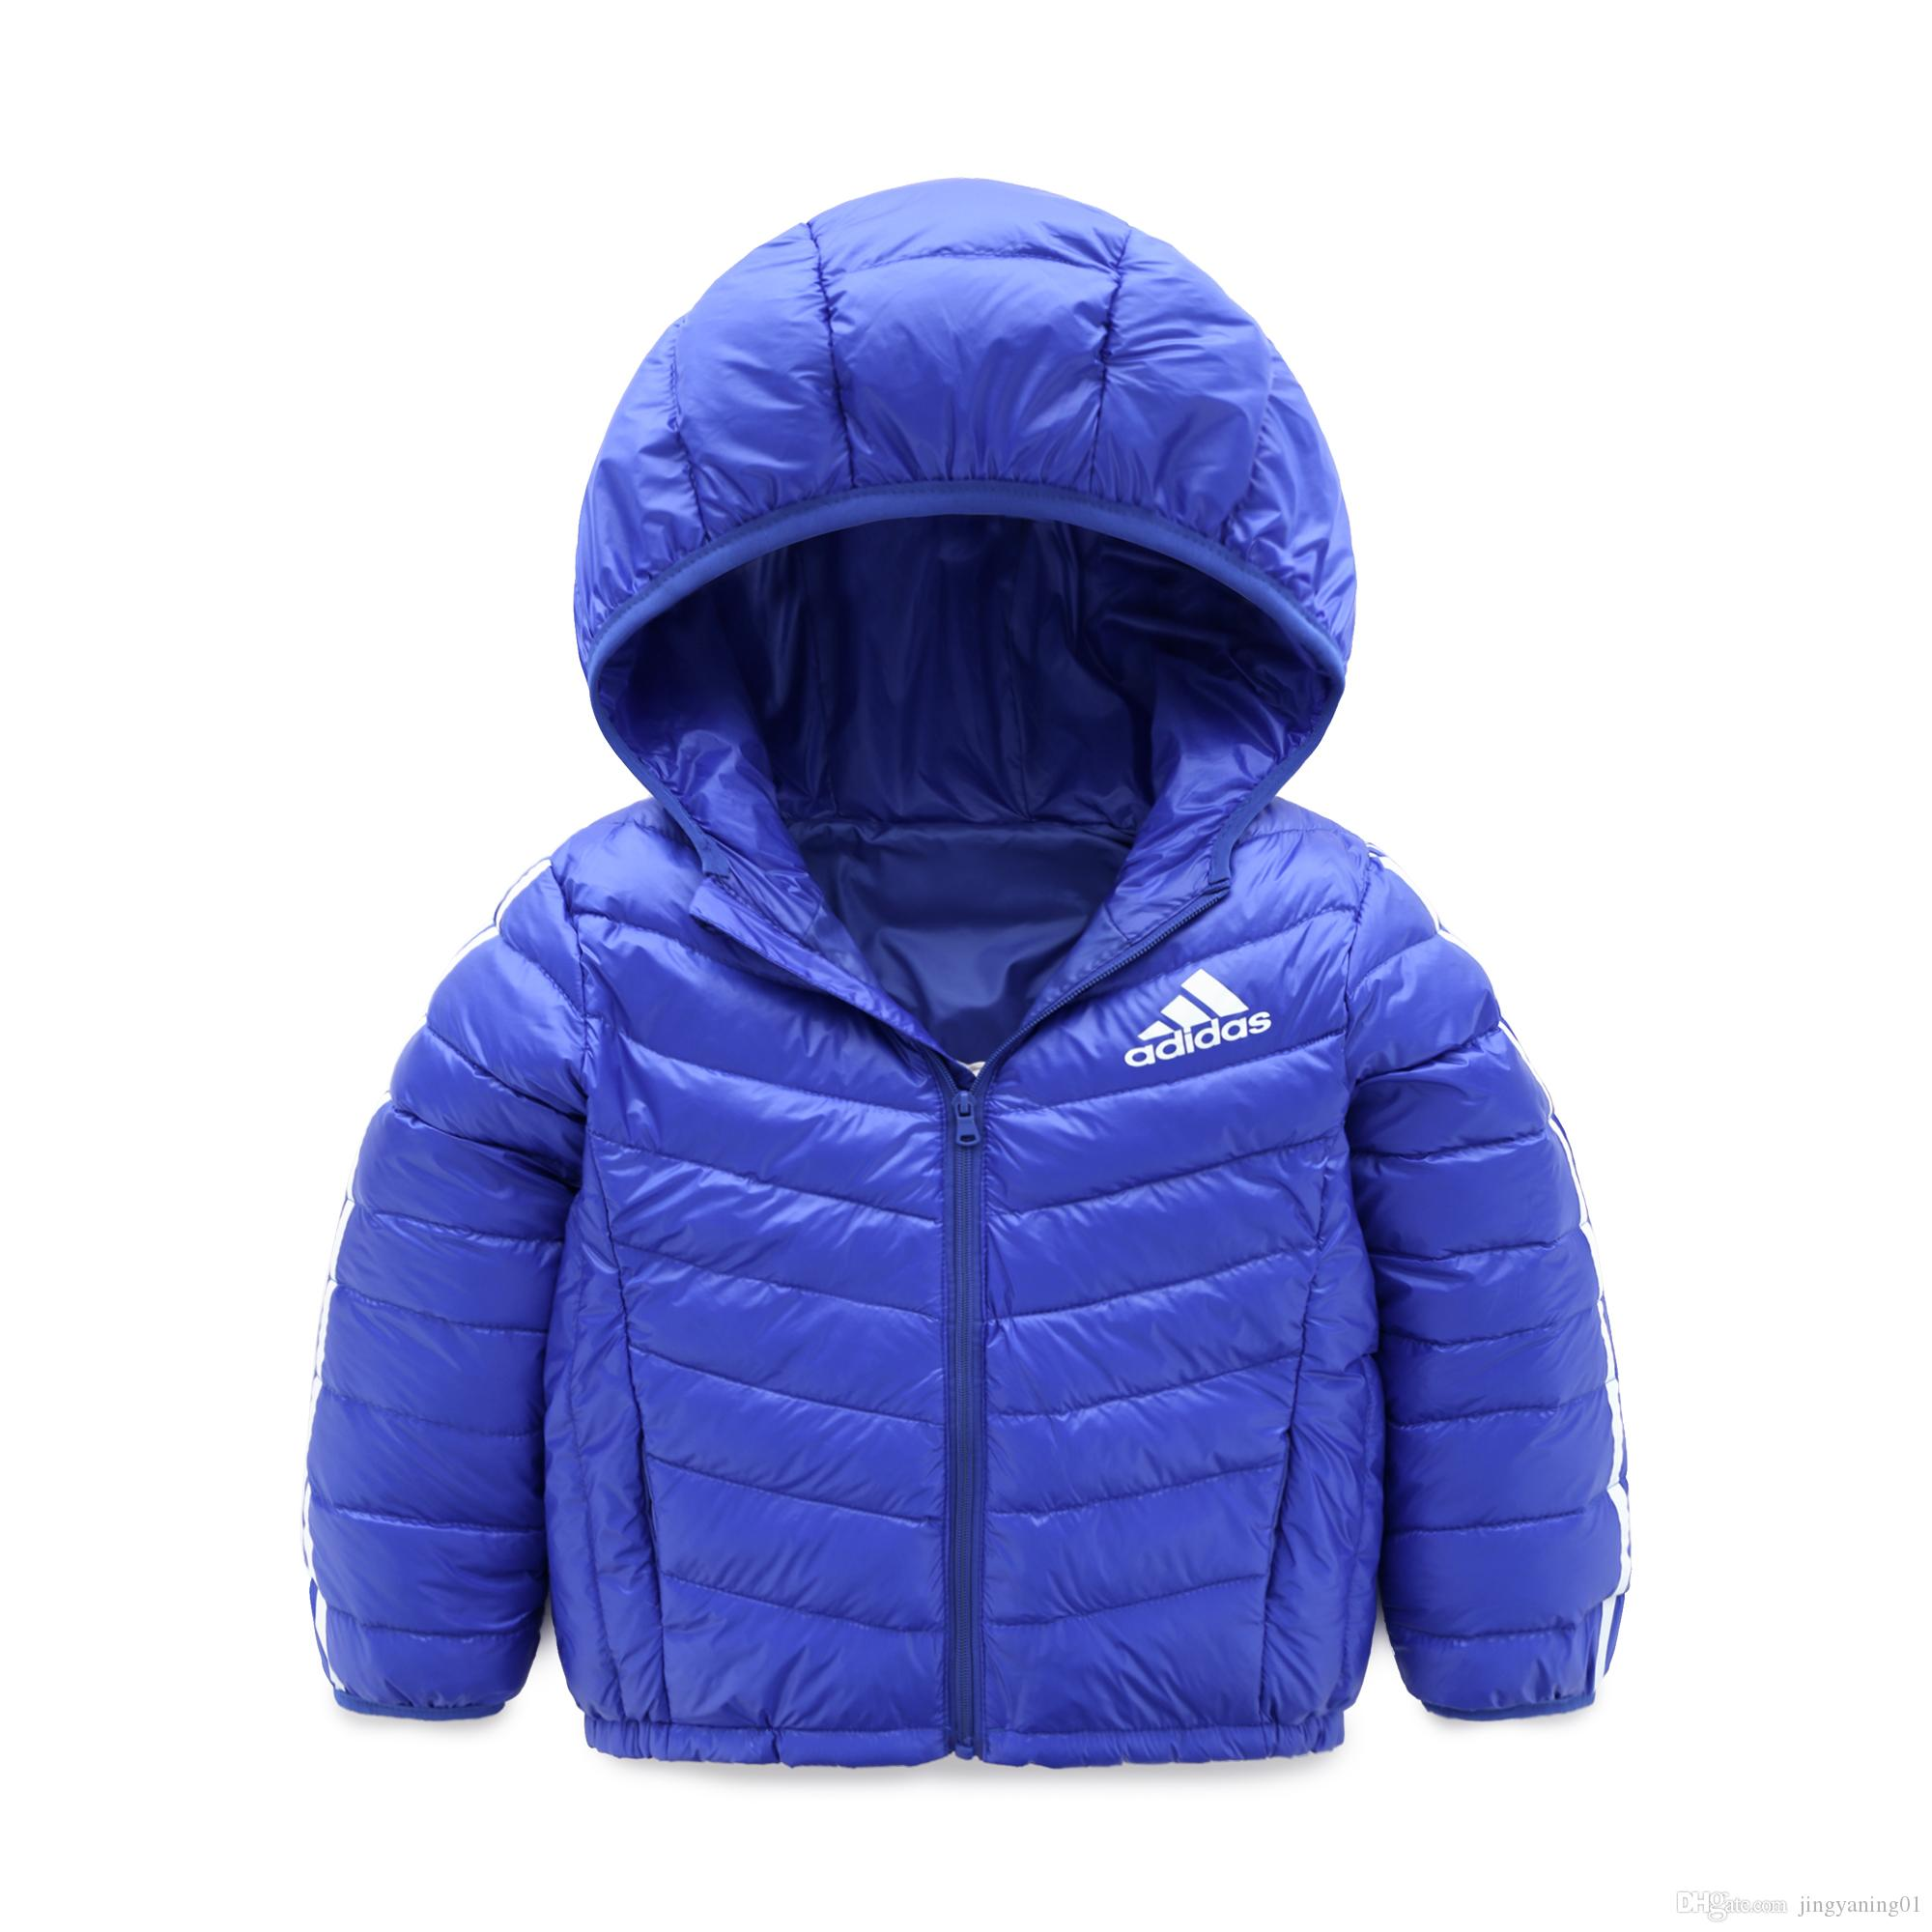 83c7d97f69d7 T888 Baby Boys Jacket Winter Jacket For Girls Jacket Kids Warm Hooded Pure  Color Infant Boys Coat Children Outerwear Clothes Down Coats For Kids Boys  Down ...